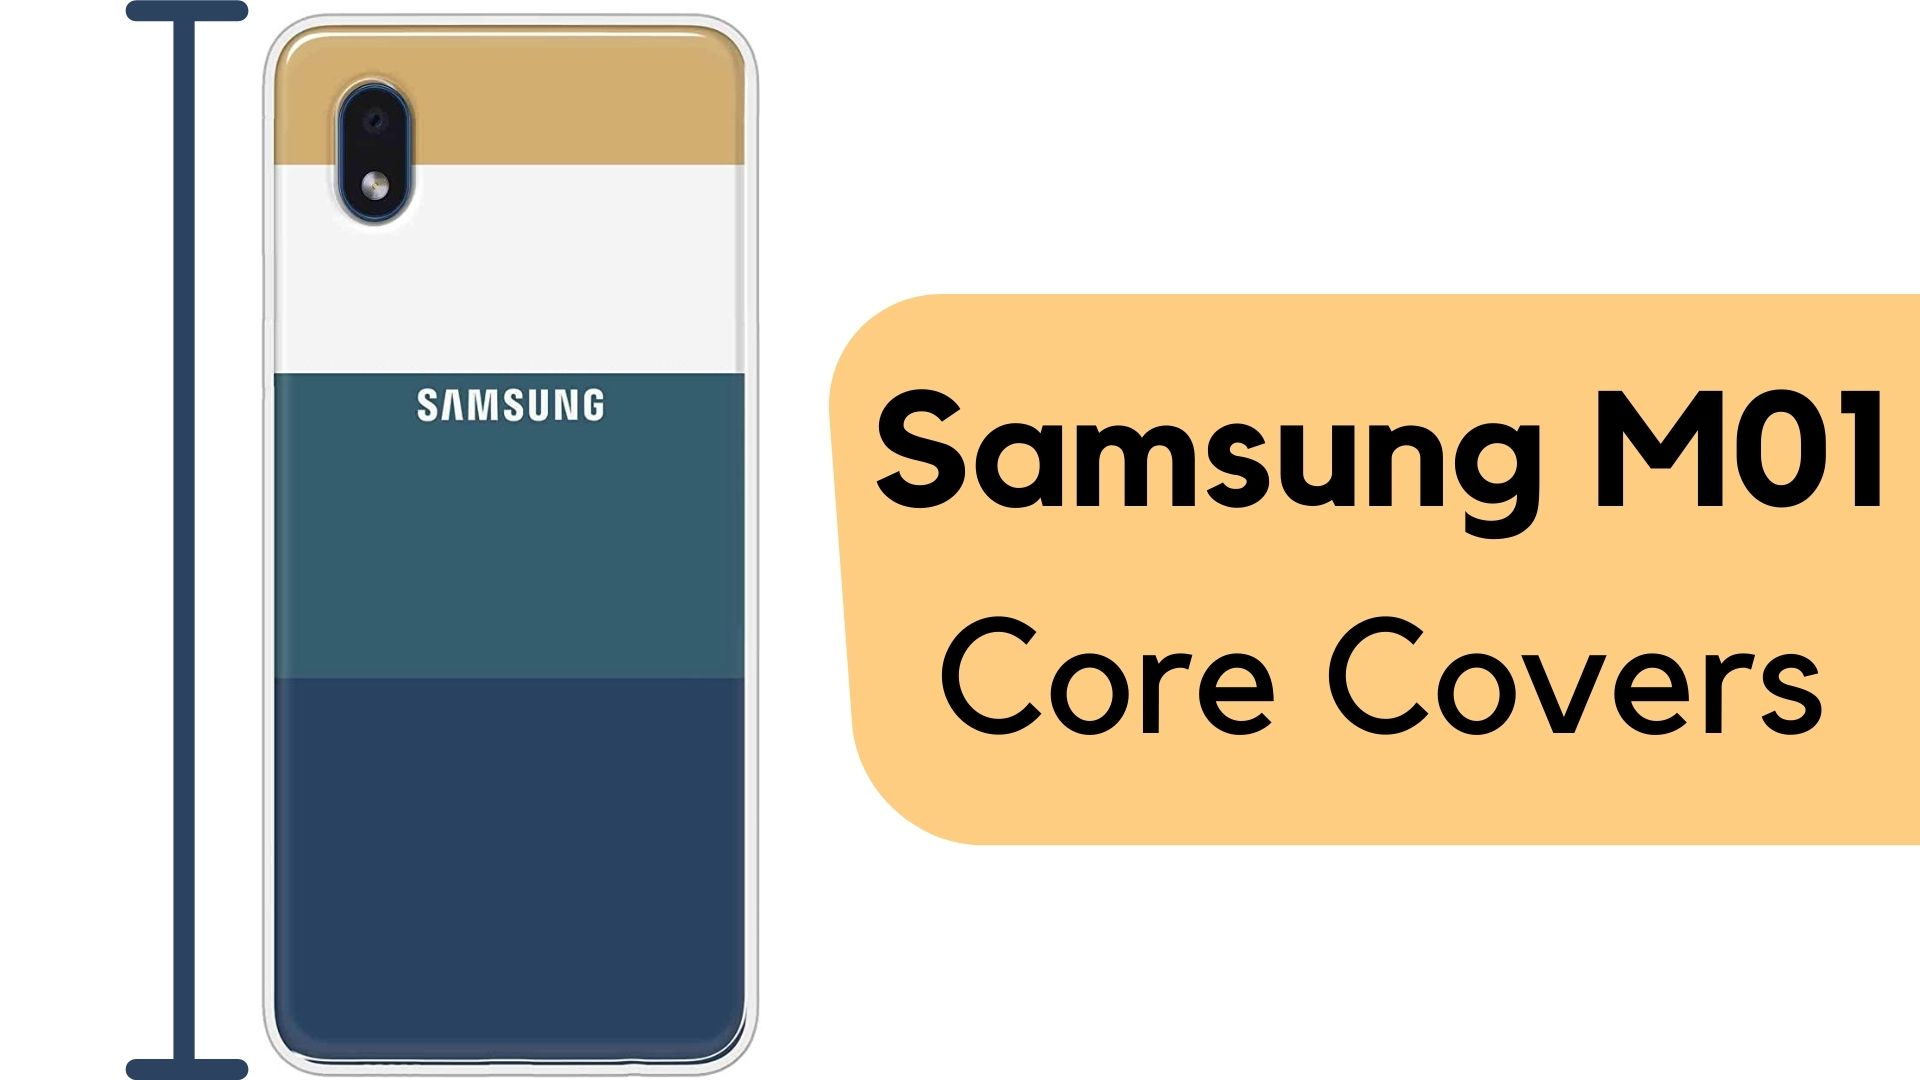 Samsung M01 Core Covers